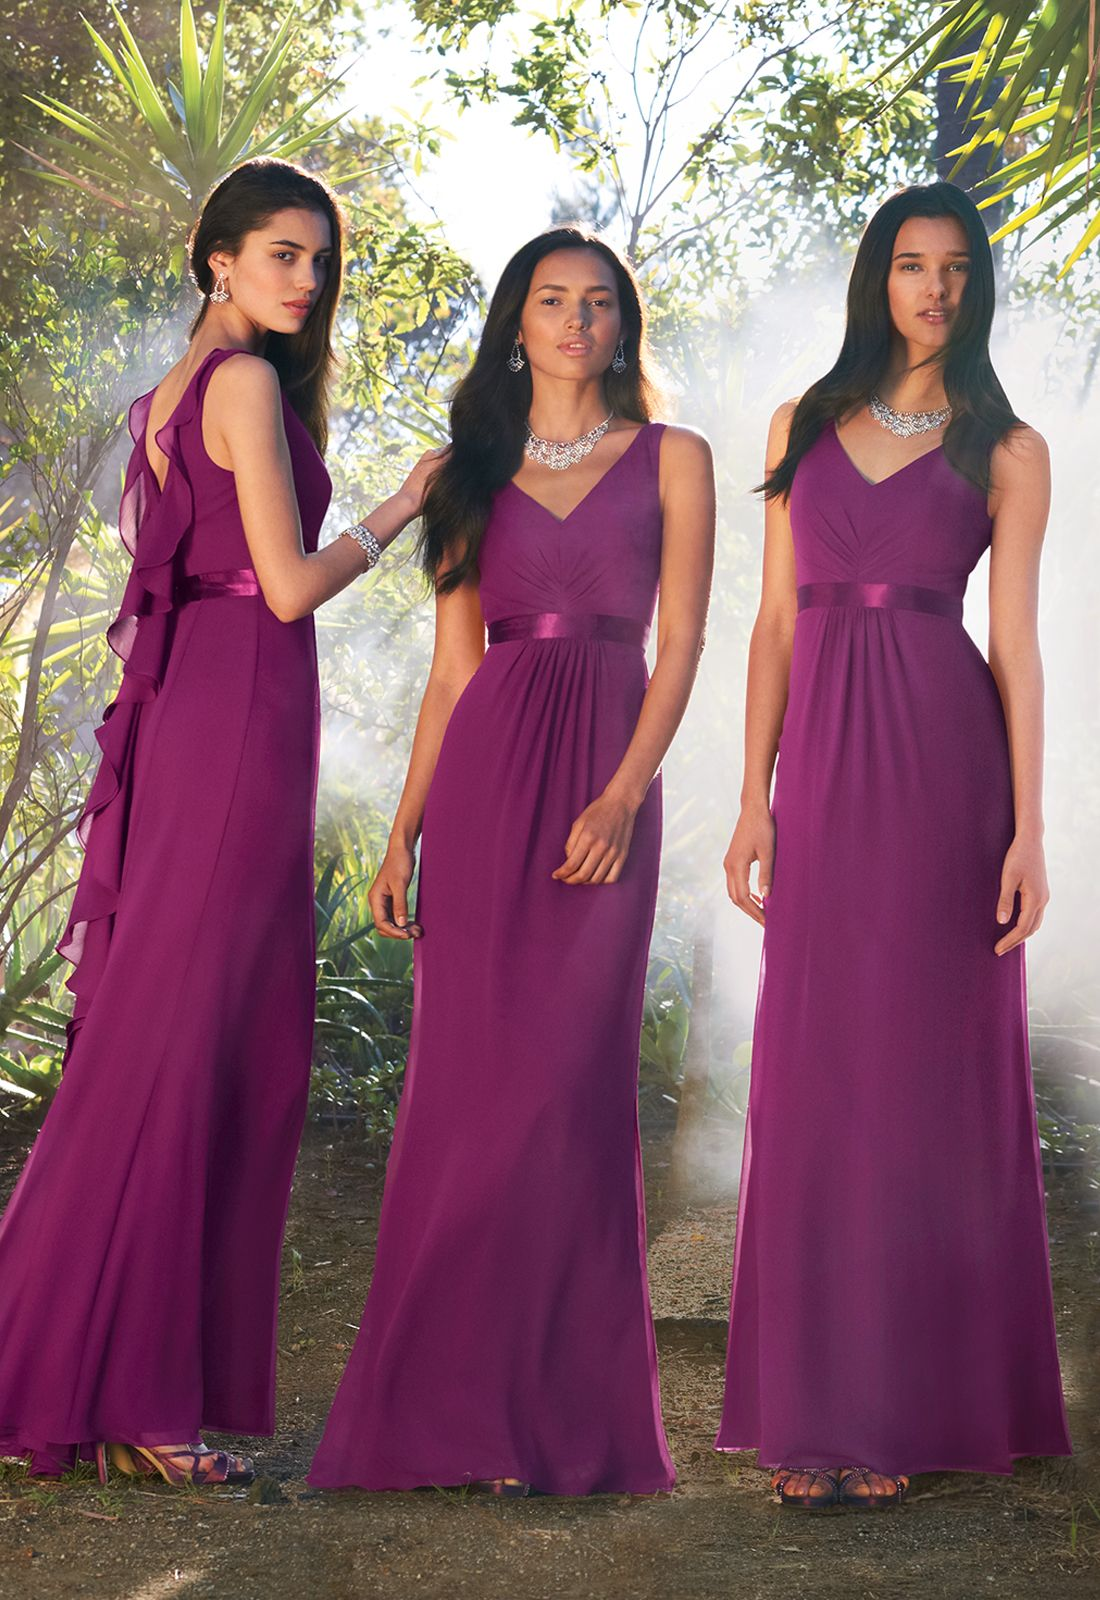 All Chic Styles In Sangria Today Globalweddings Purple Bridesmaids